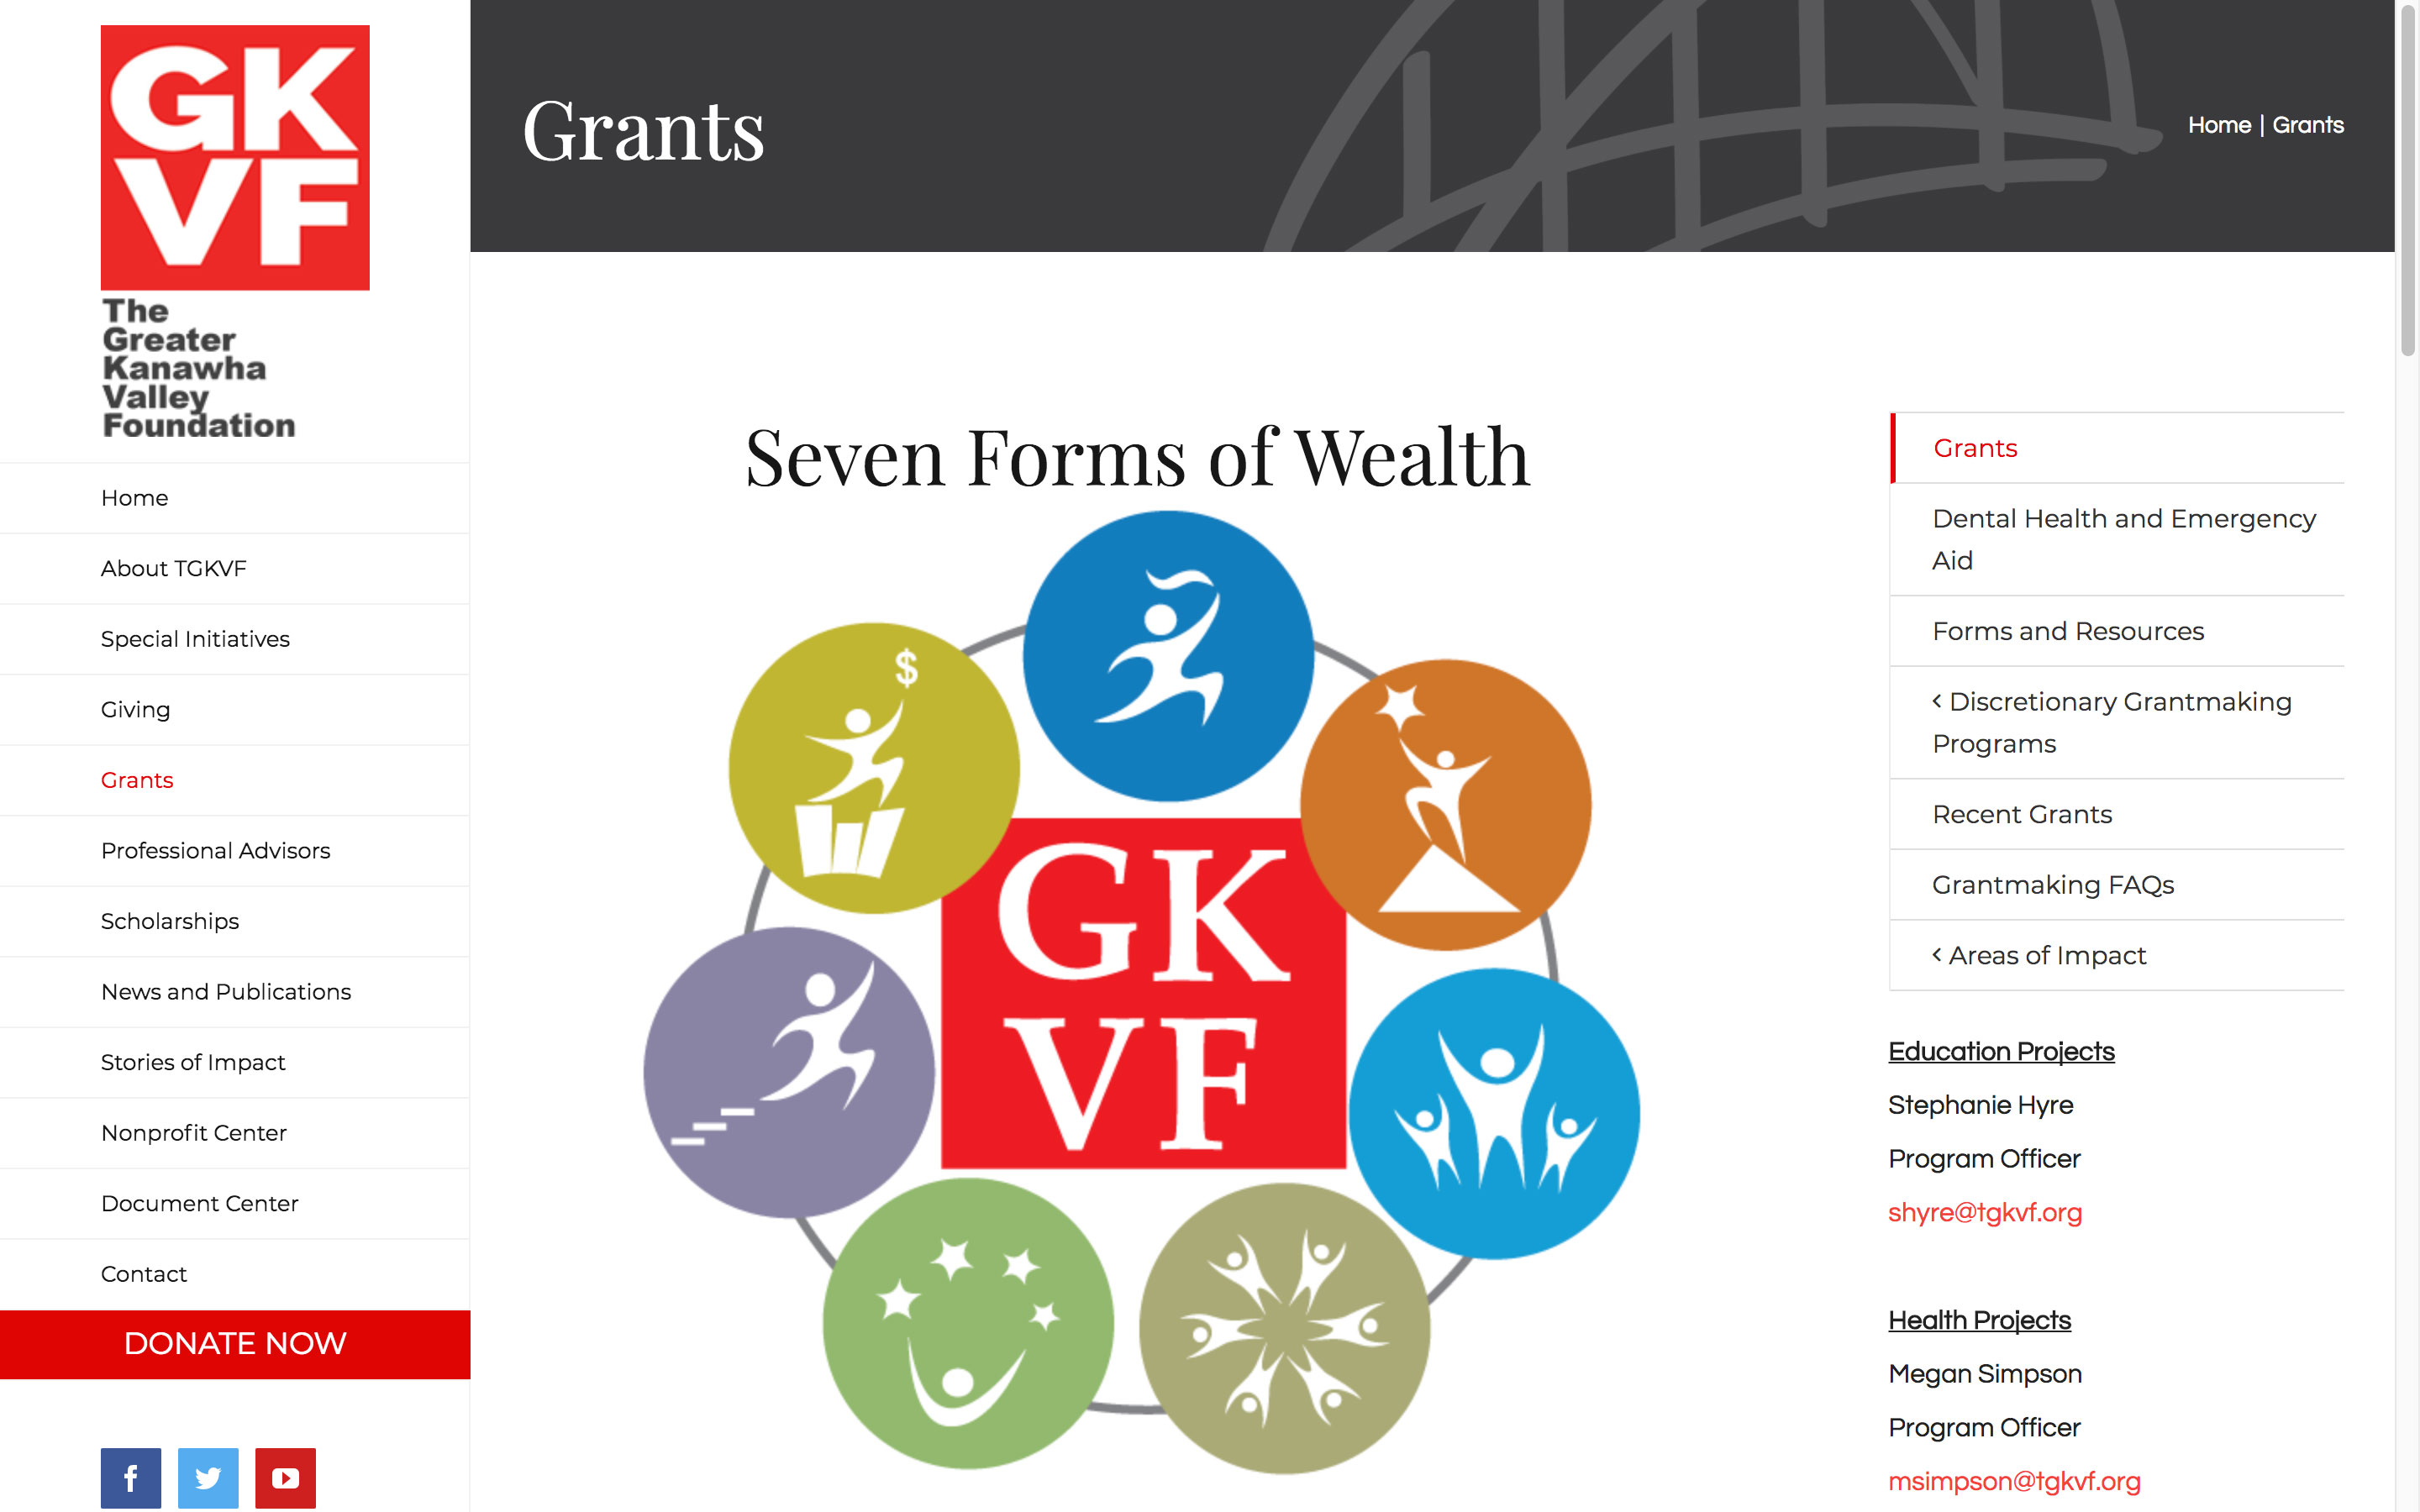 The Greater Kanawha Valley Foundation Grants Page Best Websites in WV Charleston Huntington Beckley Princeton Web Design